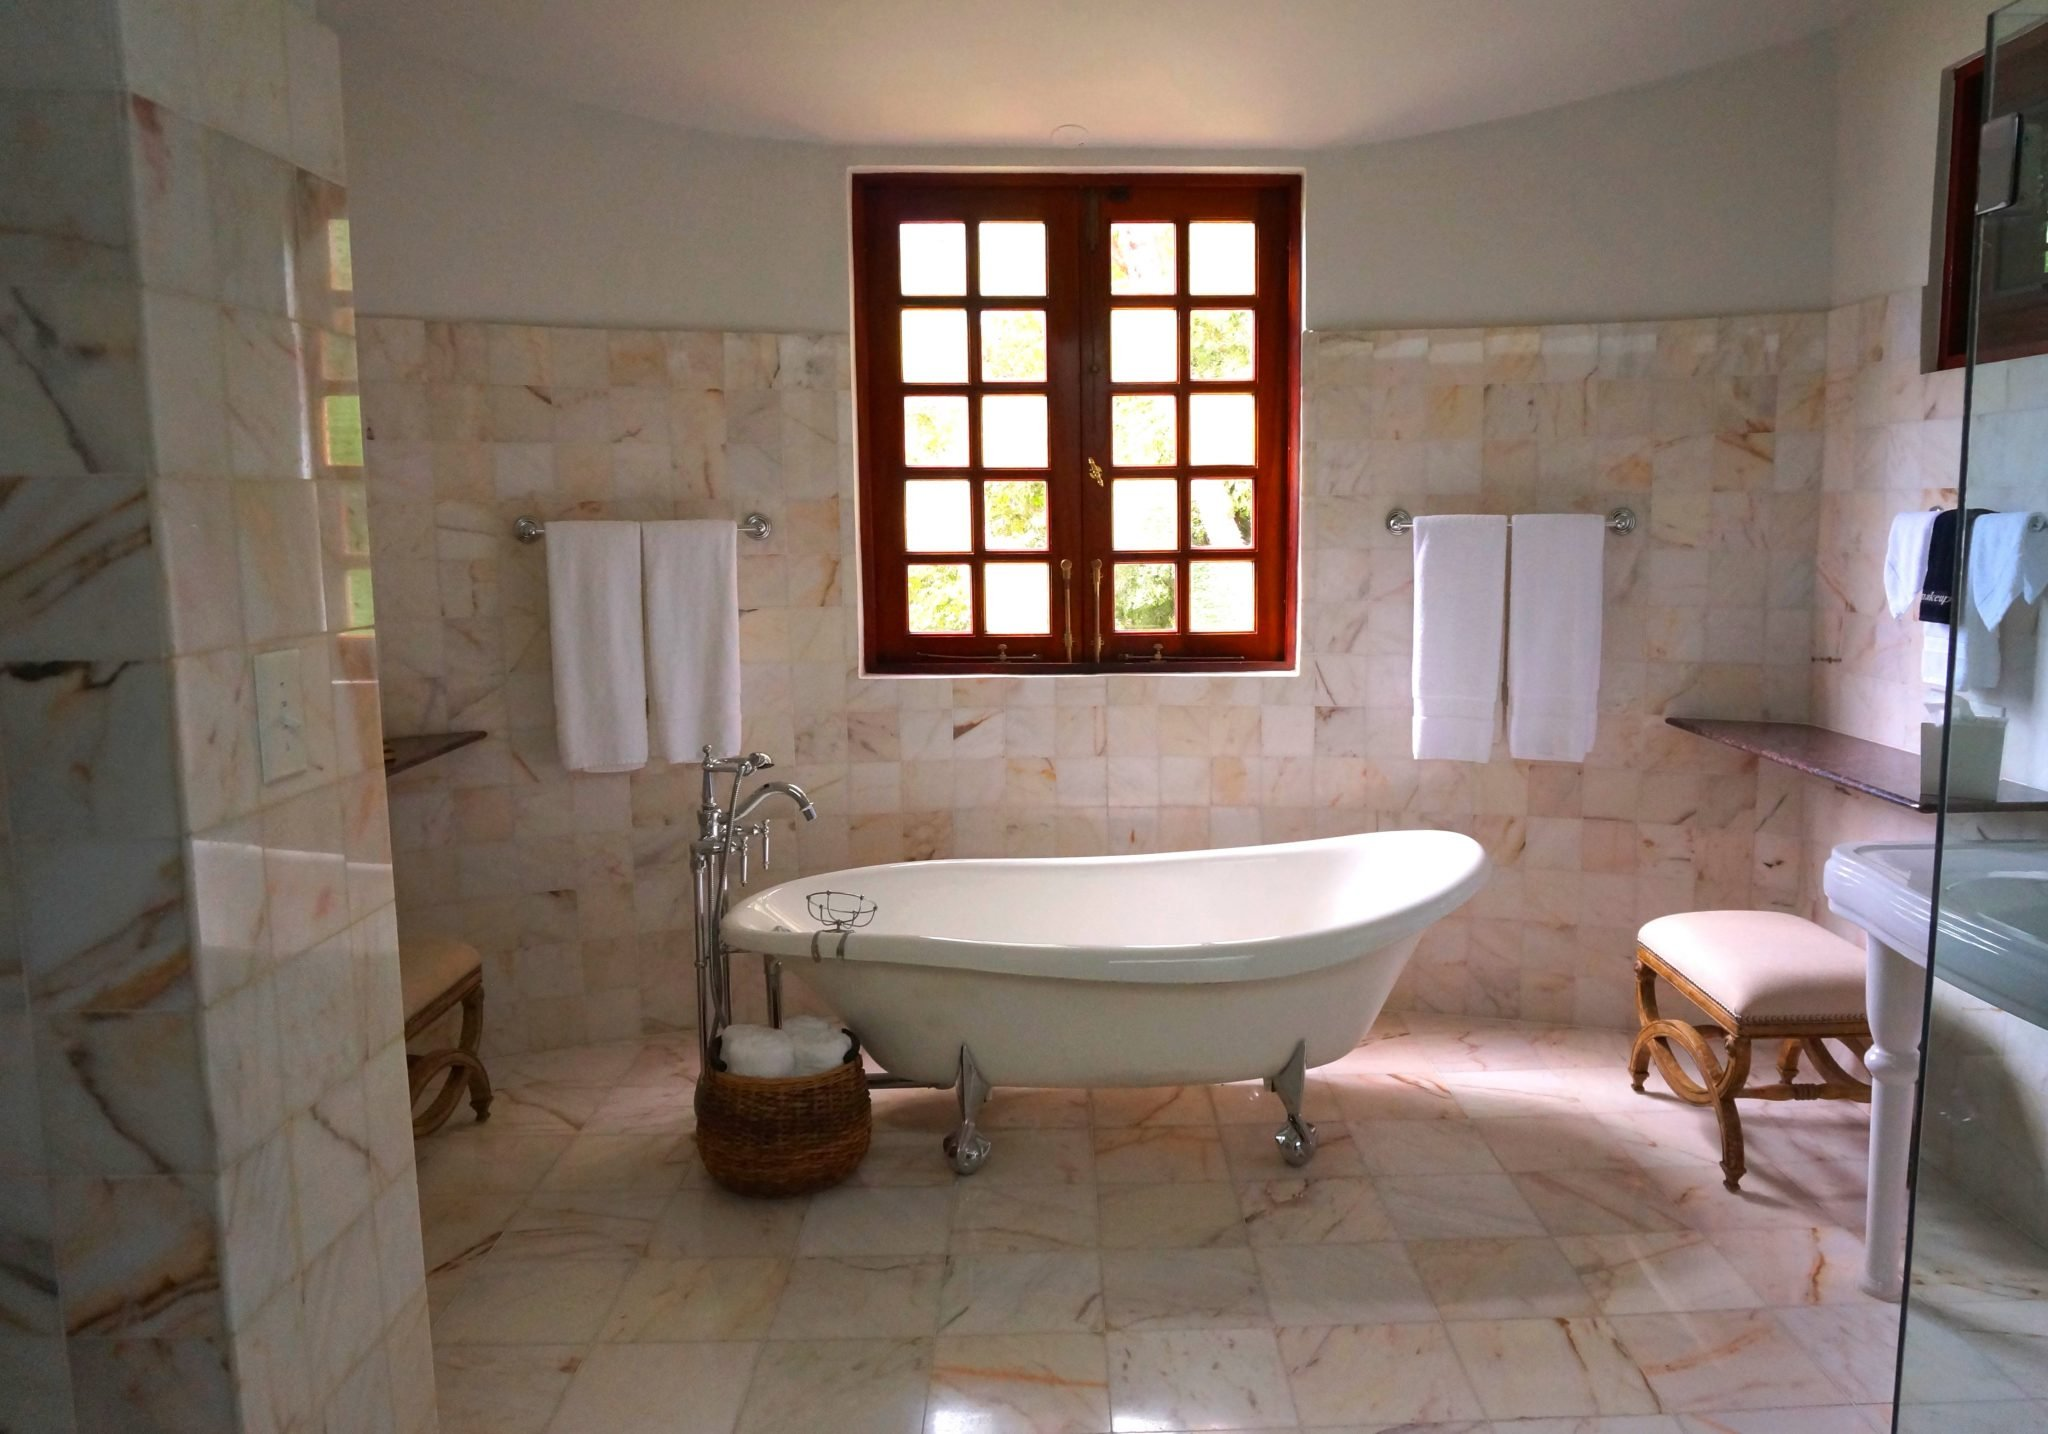 How to clean a granite bathroom